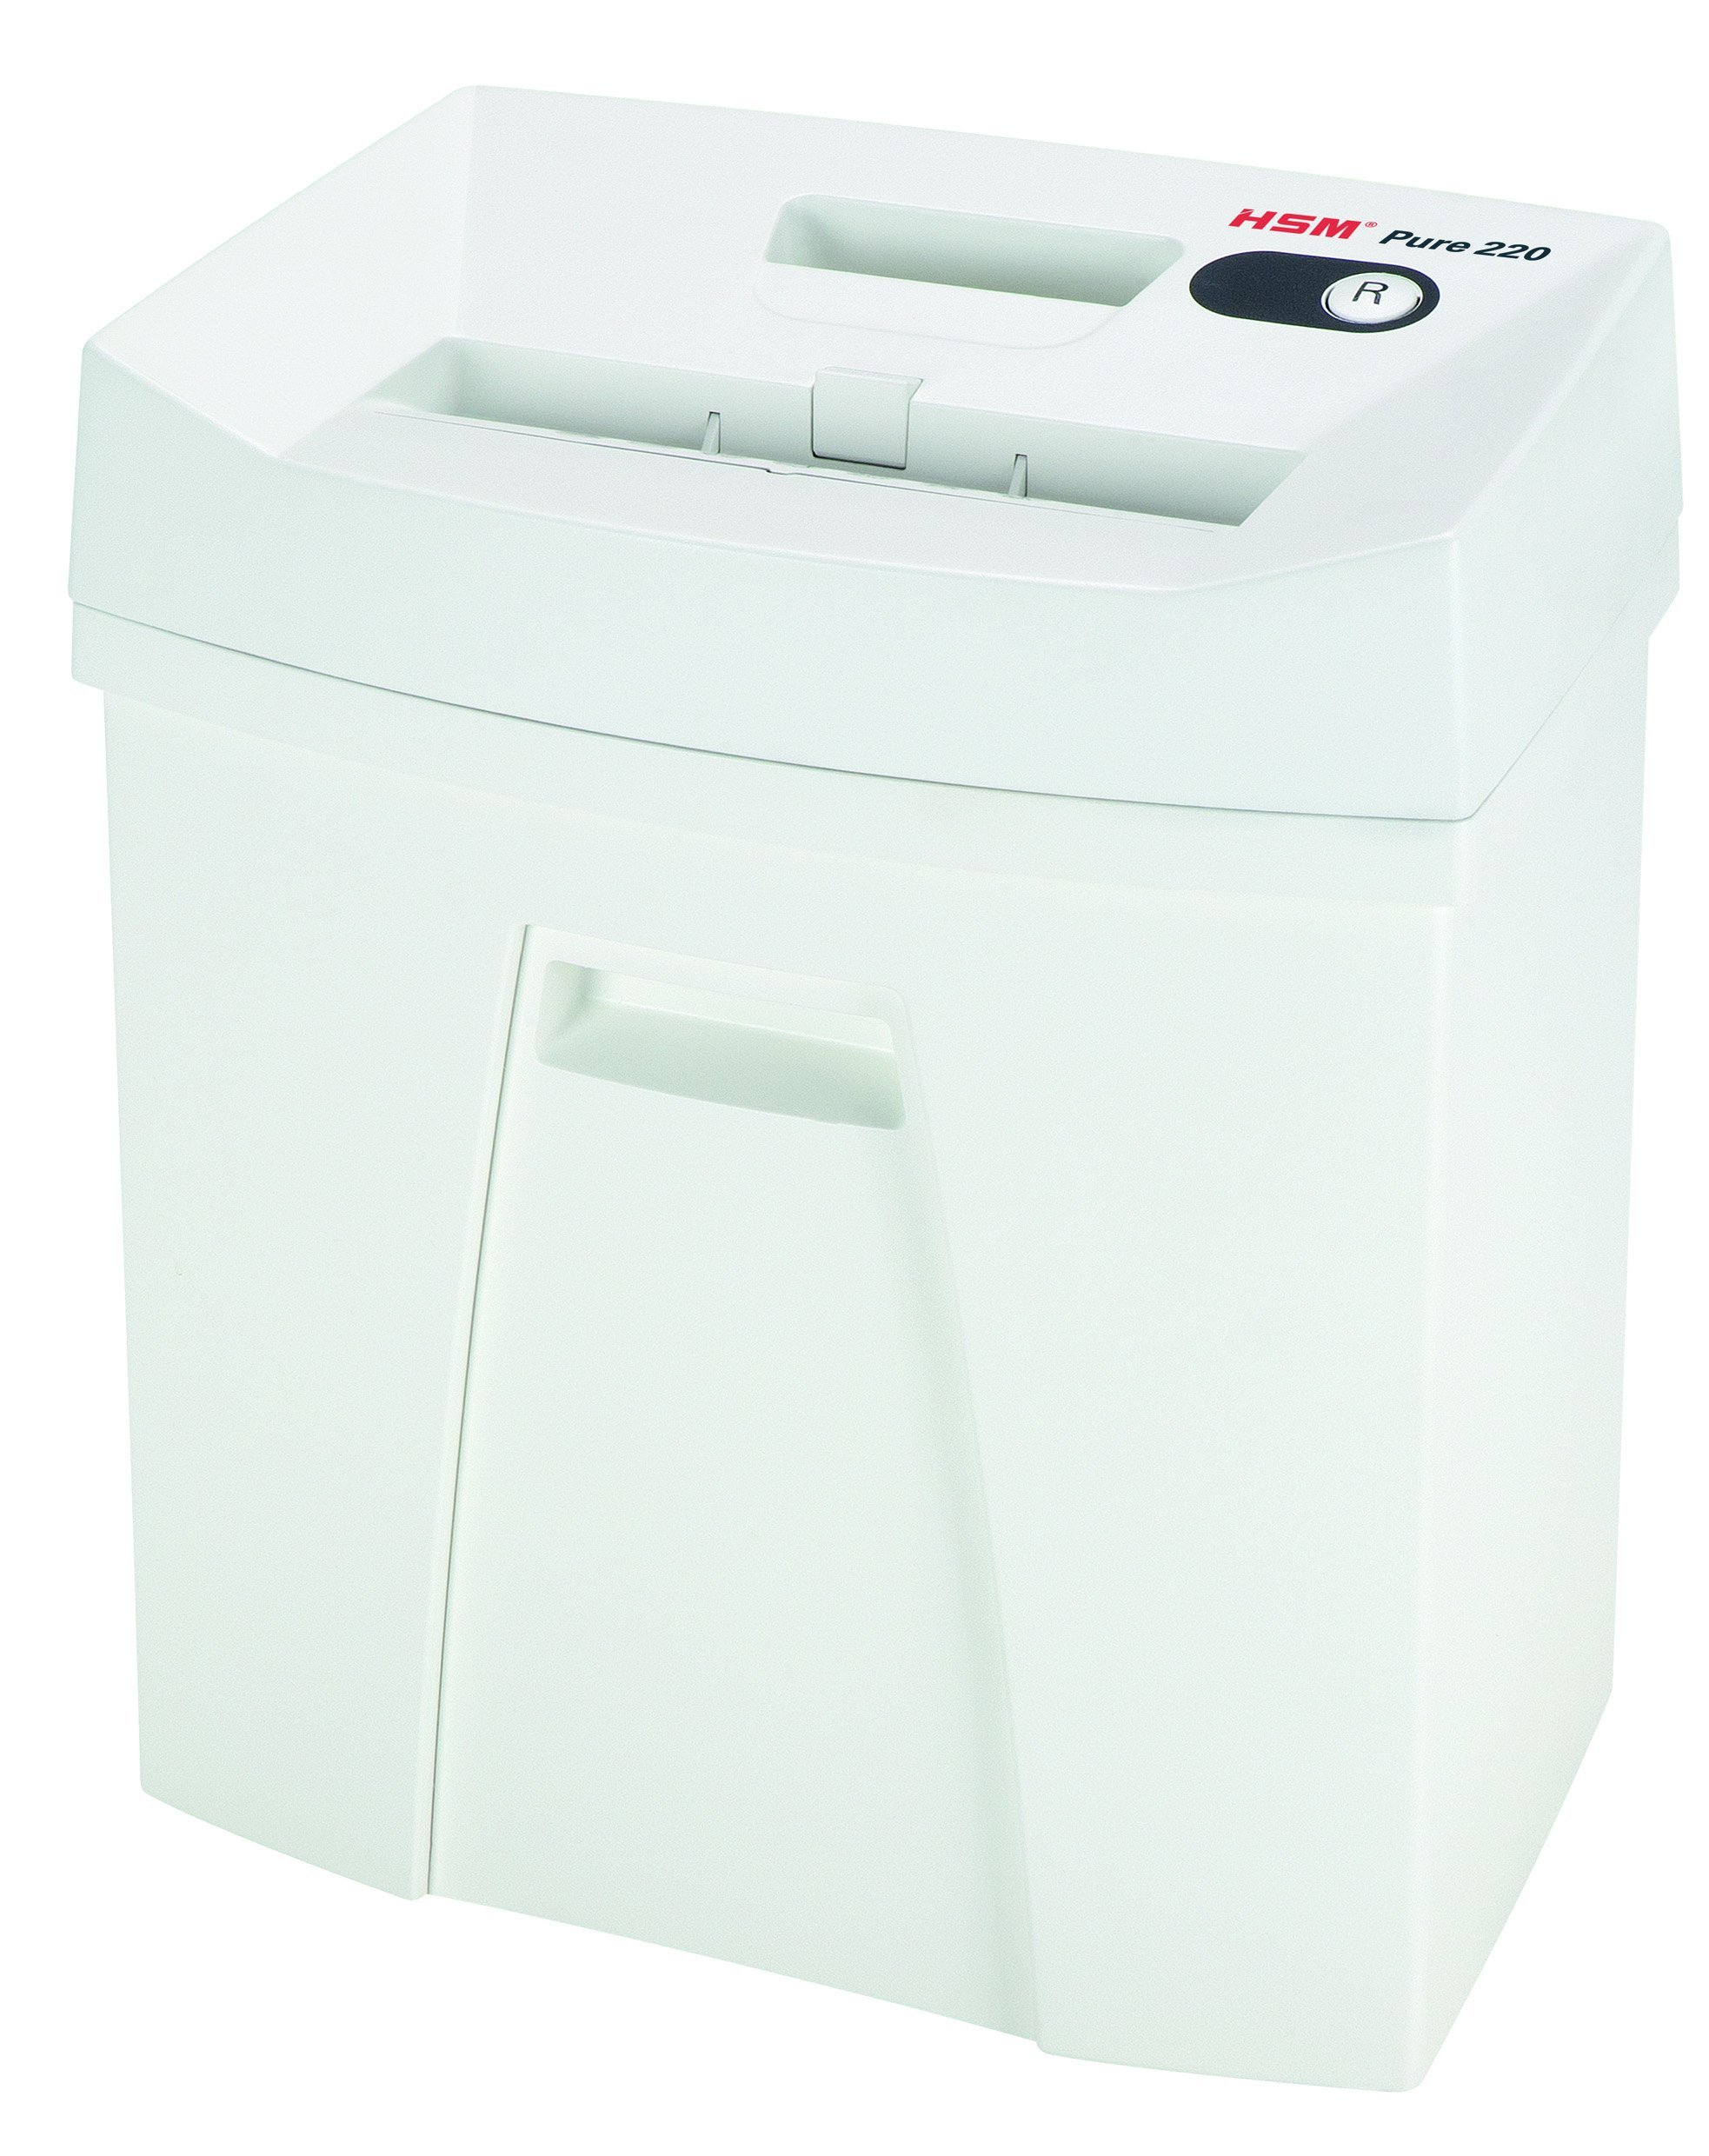 HSM Pure 220 Strip-Cut Shredder; shreds up to 15 sheets; 5.3-gallon capacity